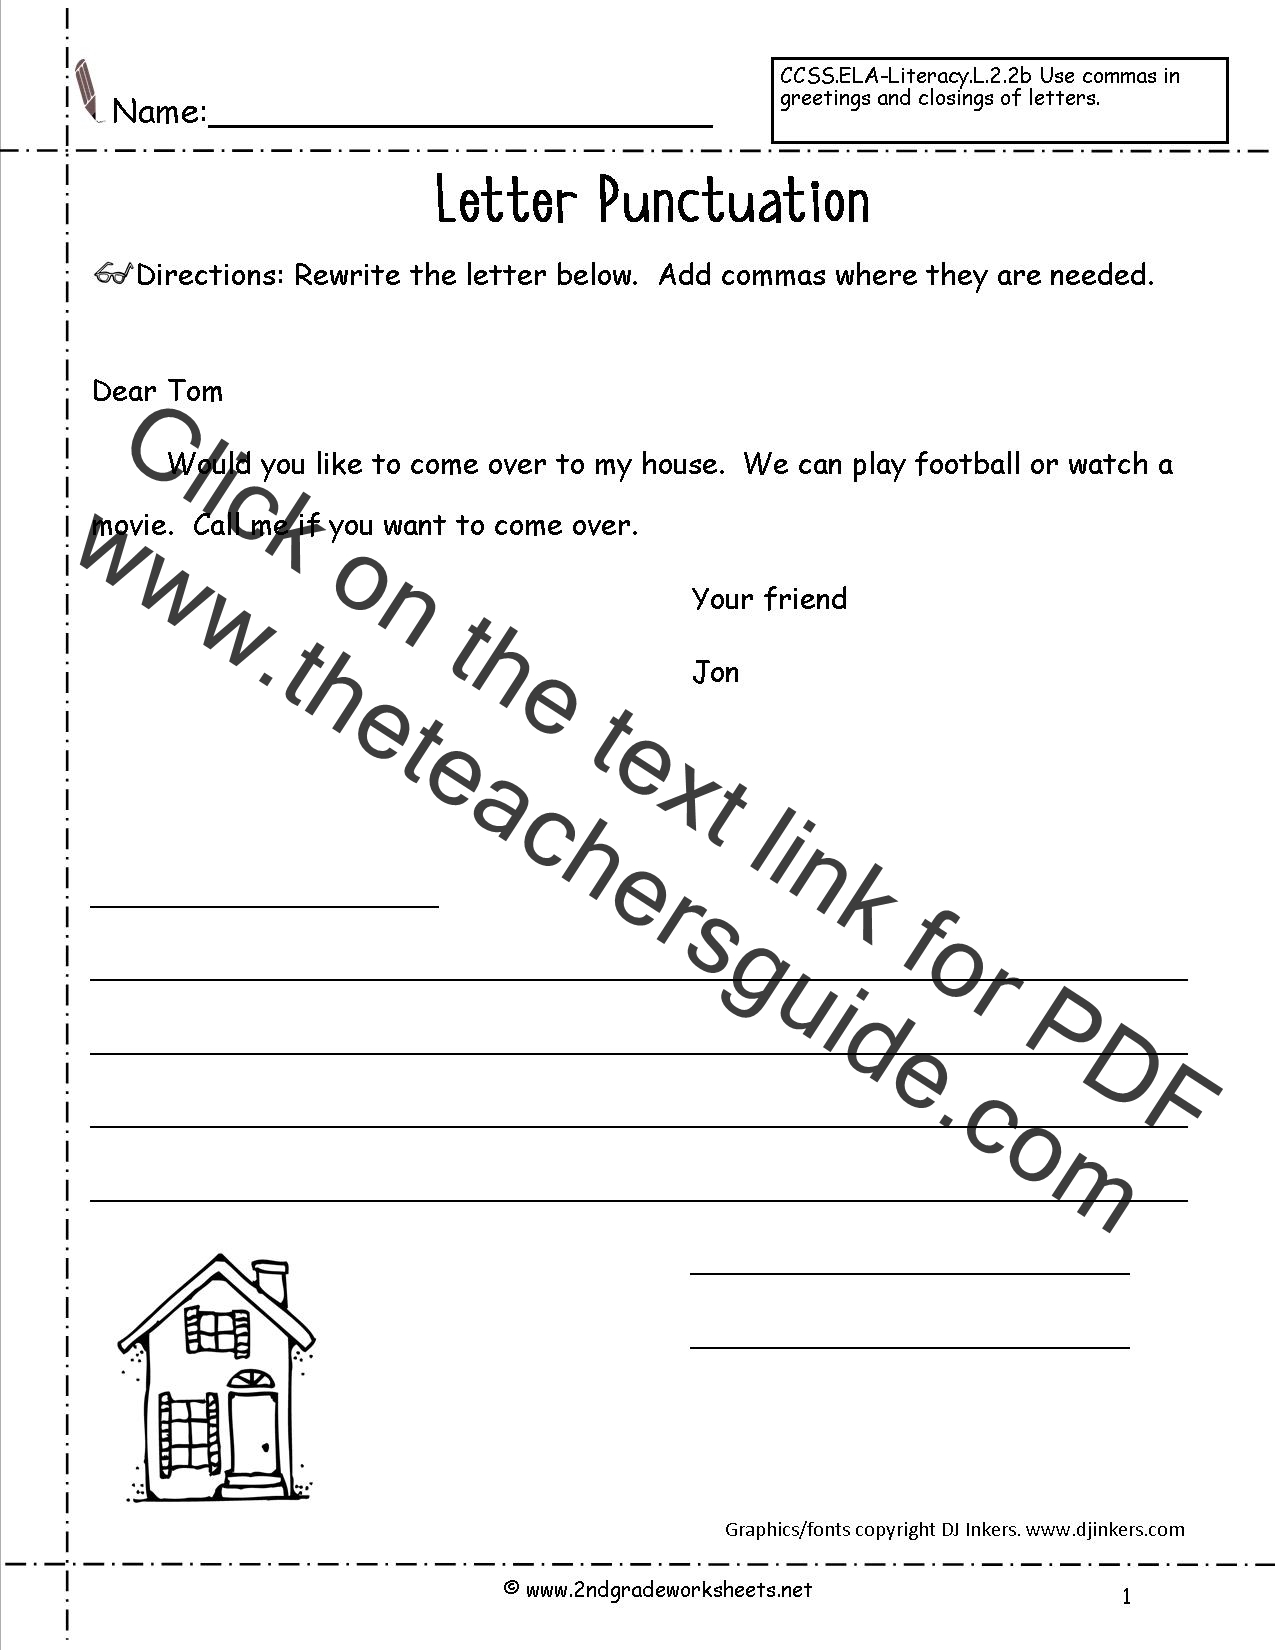 Worksheets Writing A Friendly Letter Worksheet letters and parts of a letter worksheet friendly punctuation